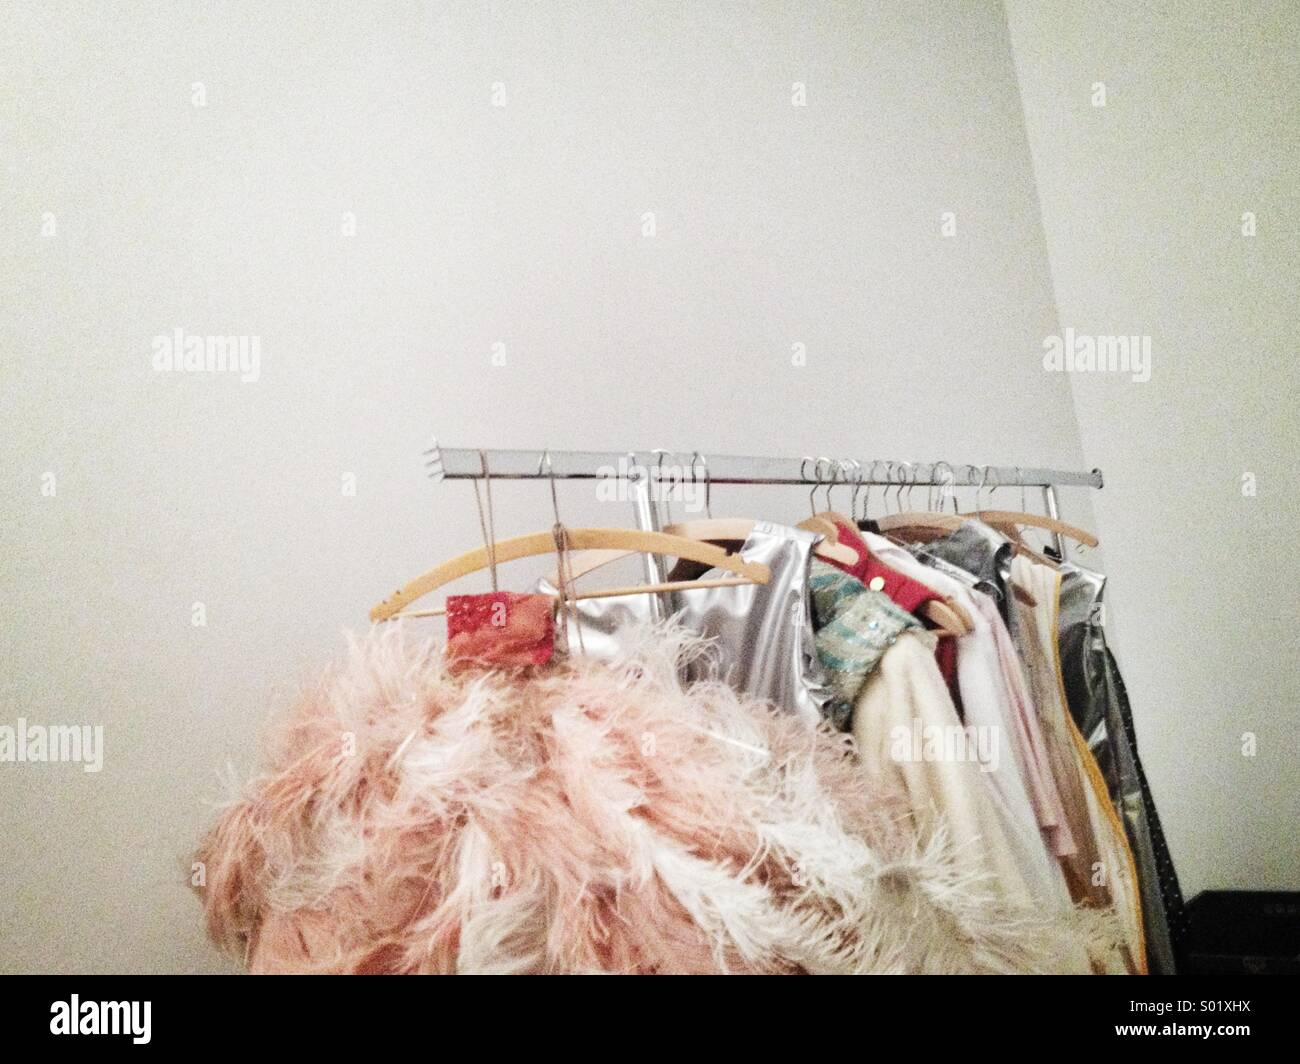 Costumes on rack - Stock Image